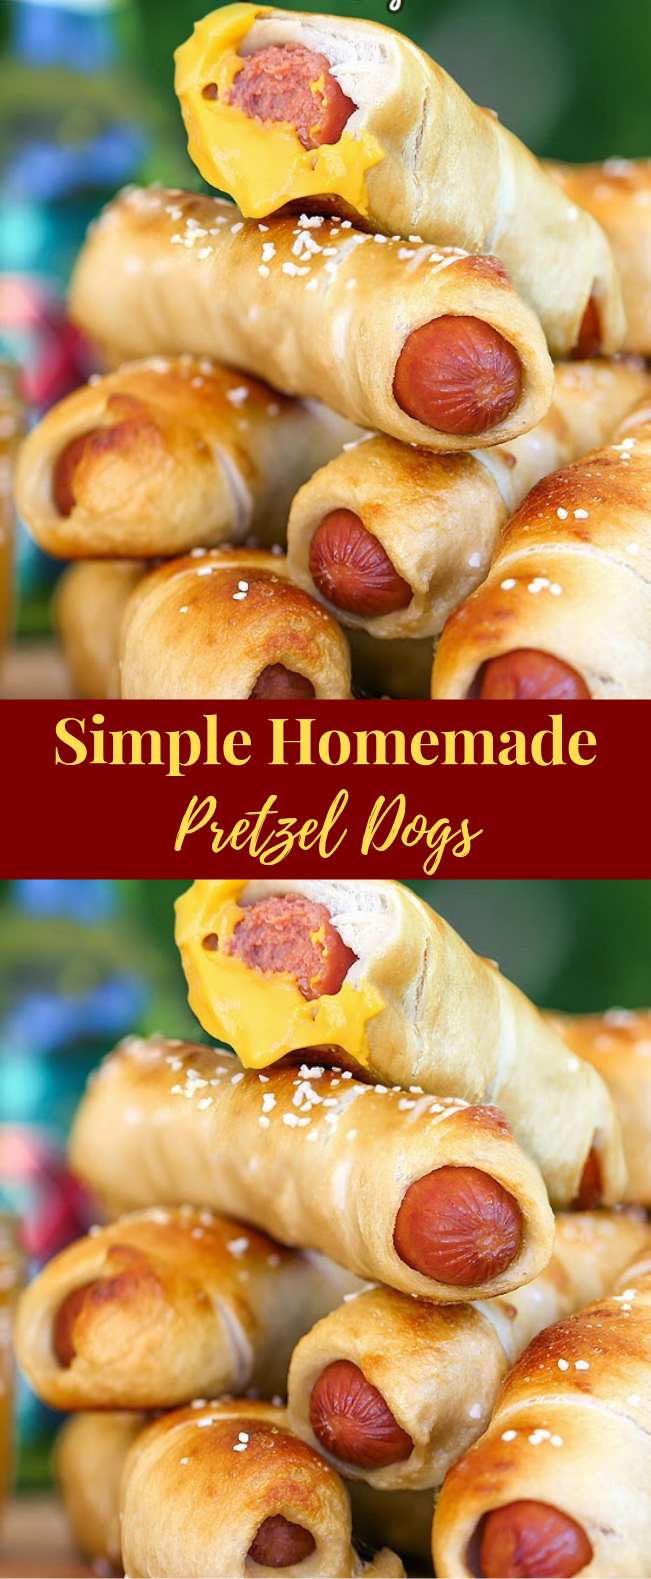 Simple Homemade Pretzel Dogs #Meal #Snack